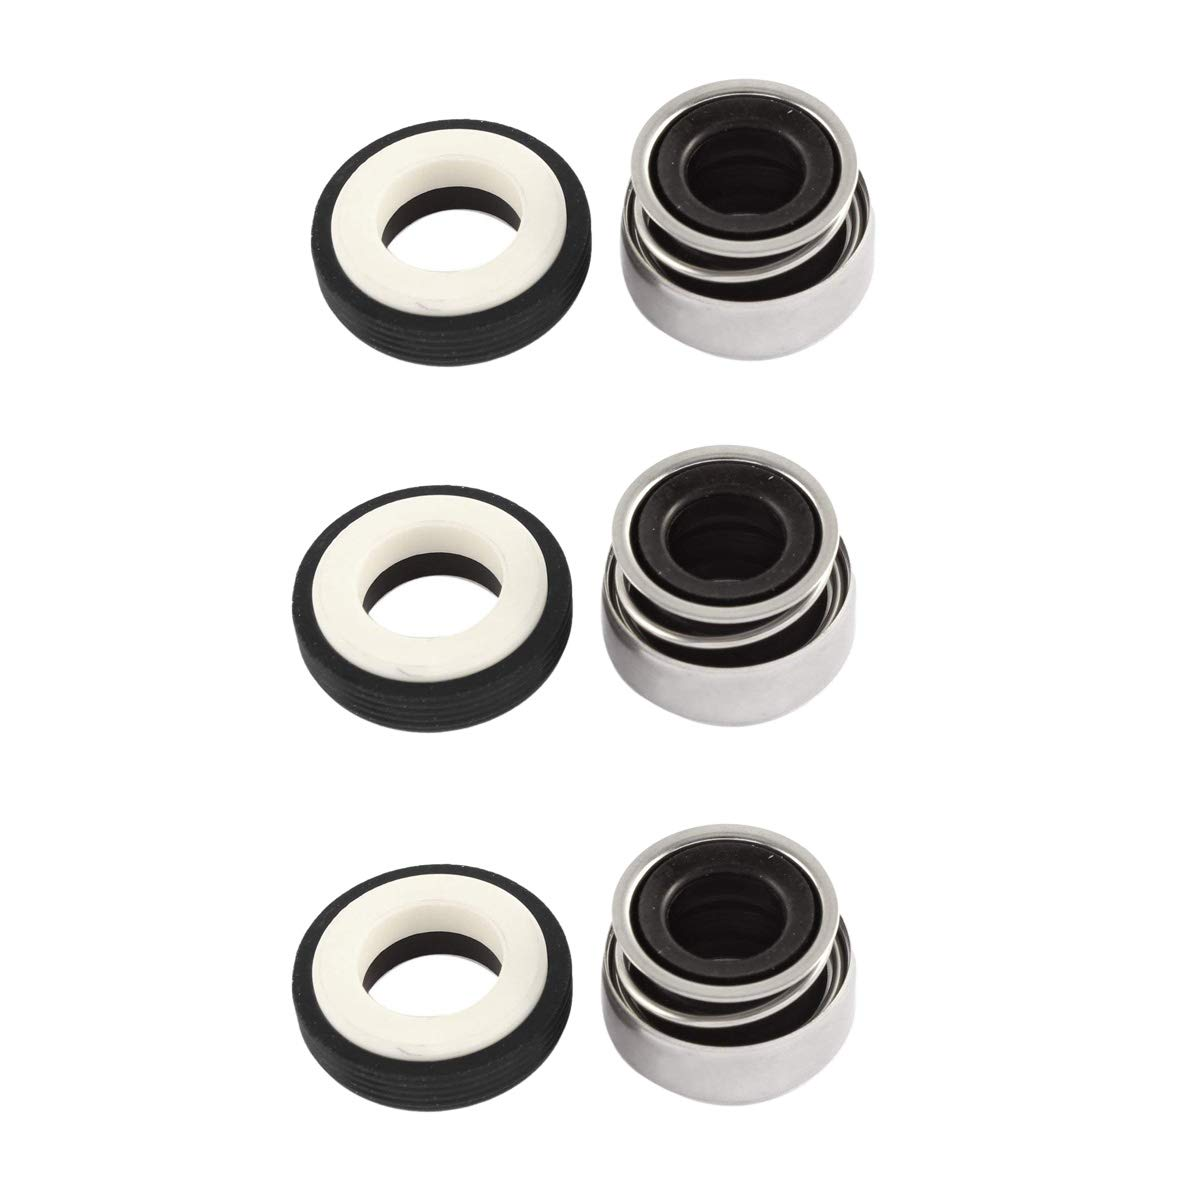 3Pcs 3Pcs Automotive Cooling Pump and Similar Mechanical Rotary Axis 12mm//0.5 Internal Dia XMHF Single Coil Spring Mechanical Seal,Suitable to Water Pump,Automotive Cooling Pump and Similar Mechanical Rotary Axis 12mm//0.5 Internal Dia